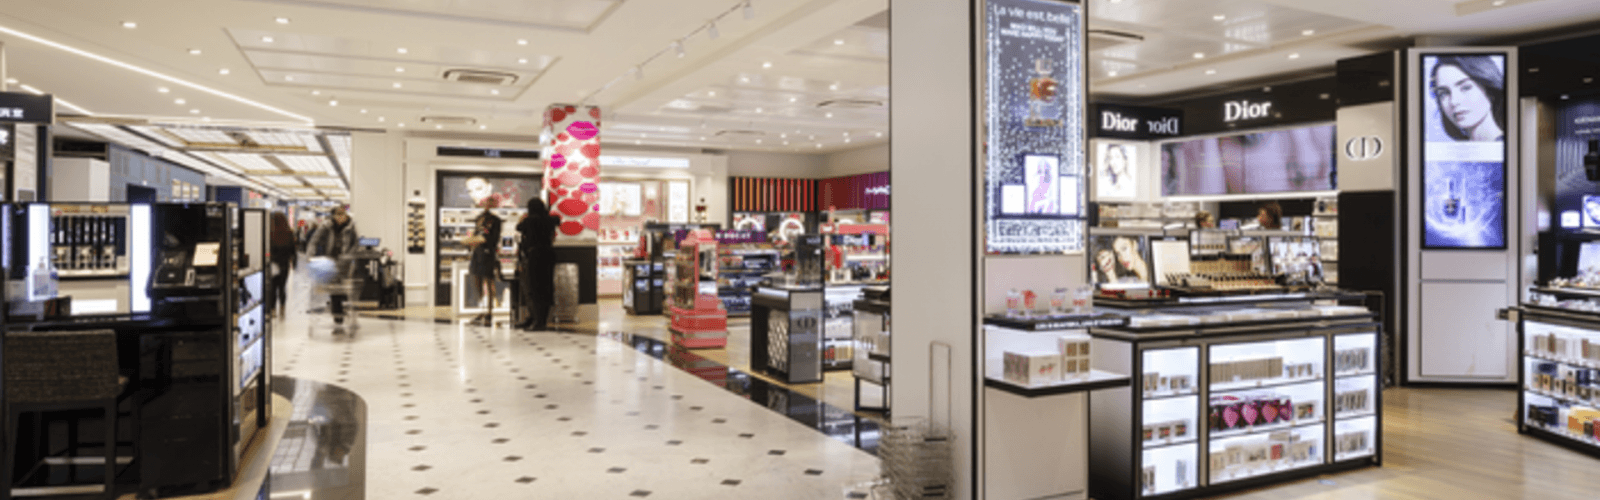 Boutique Duty Free CDG